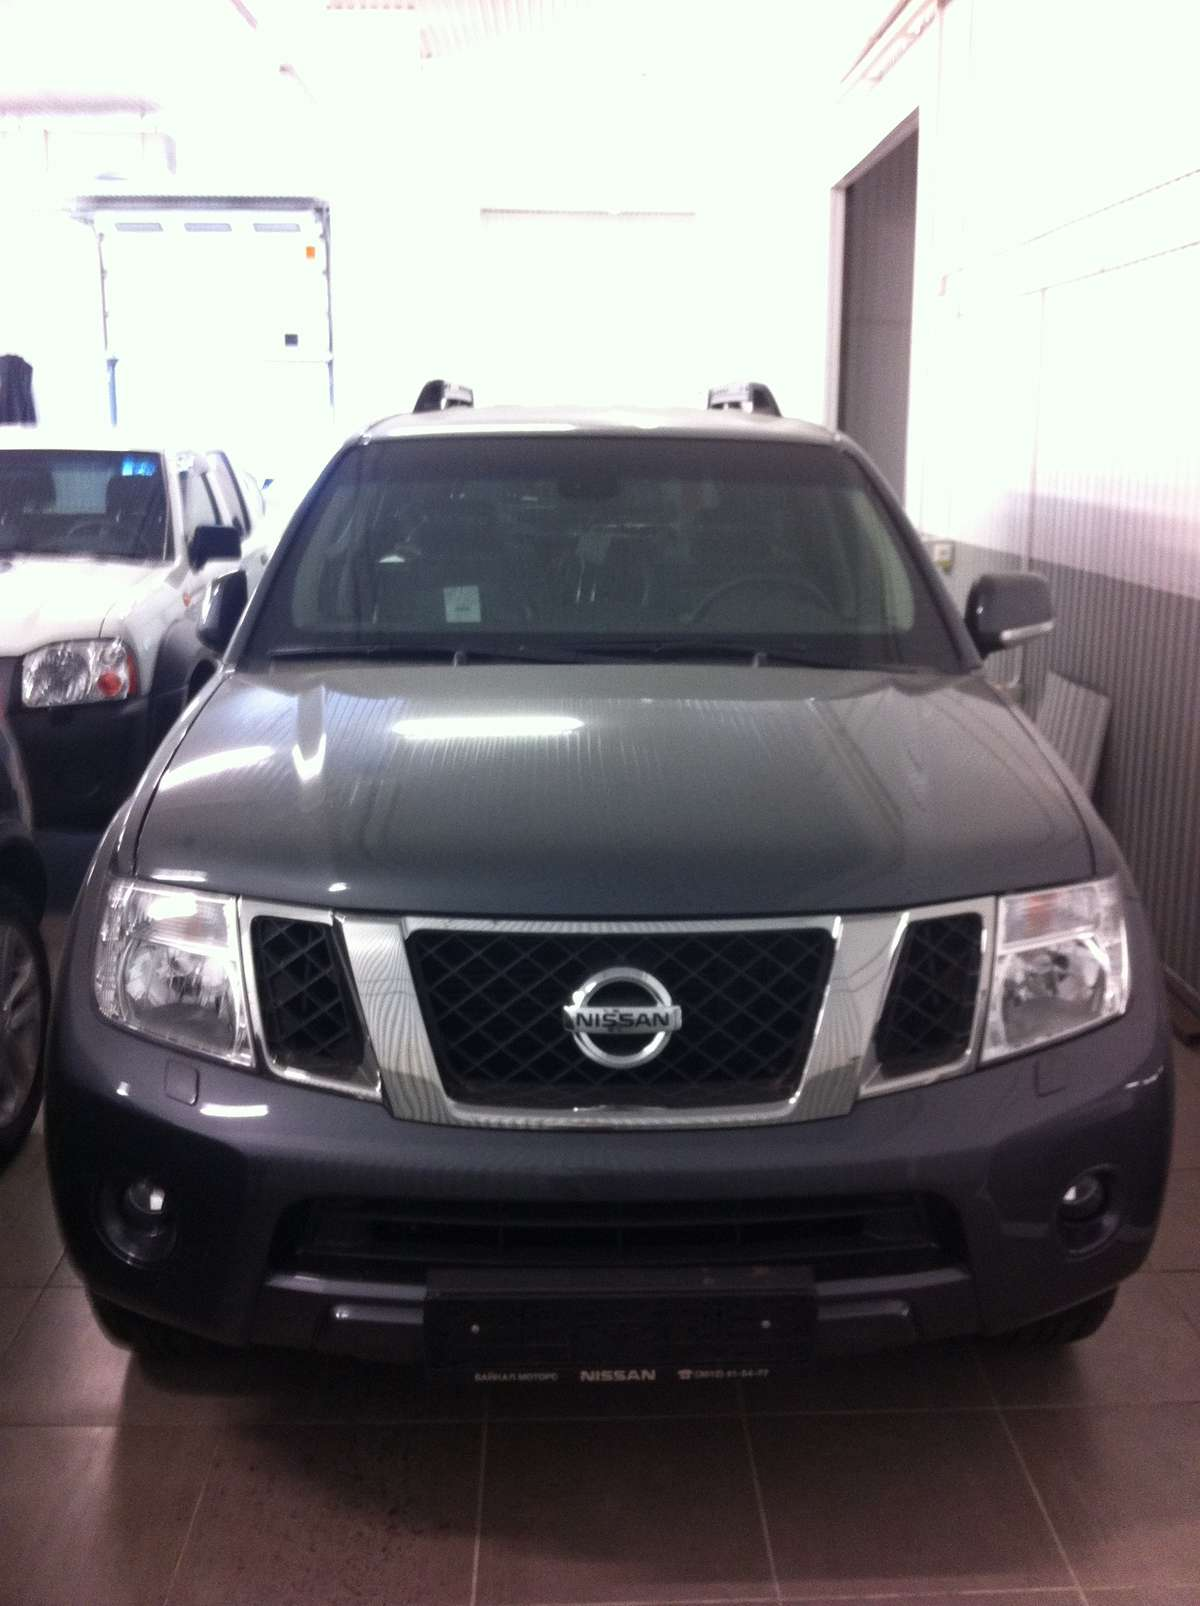 used 2012 nissan pathfinder photos 2500cc diesel. Black Bedroom Furniture Sets. Home Design Ideas